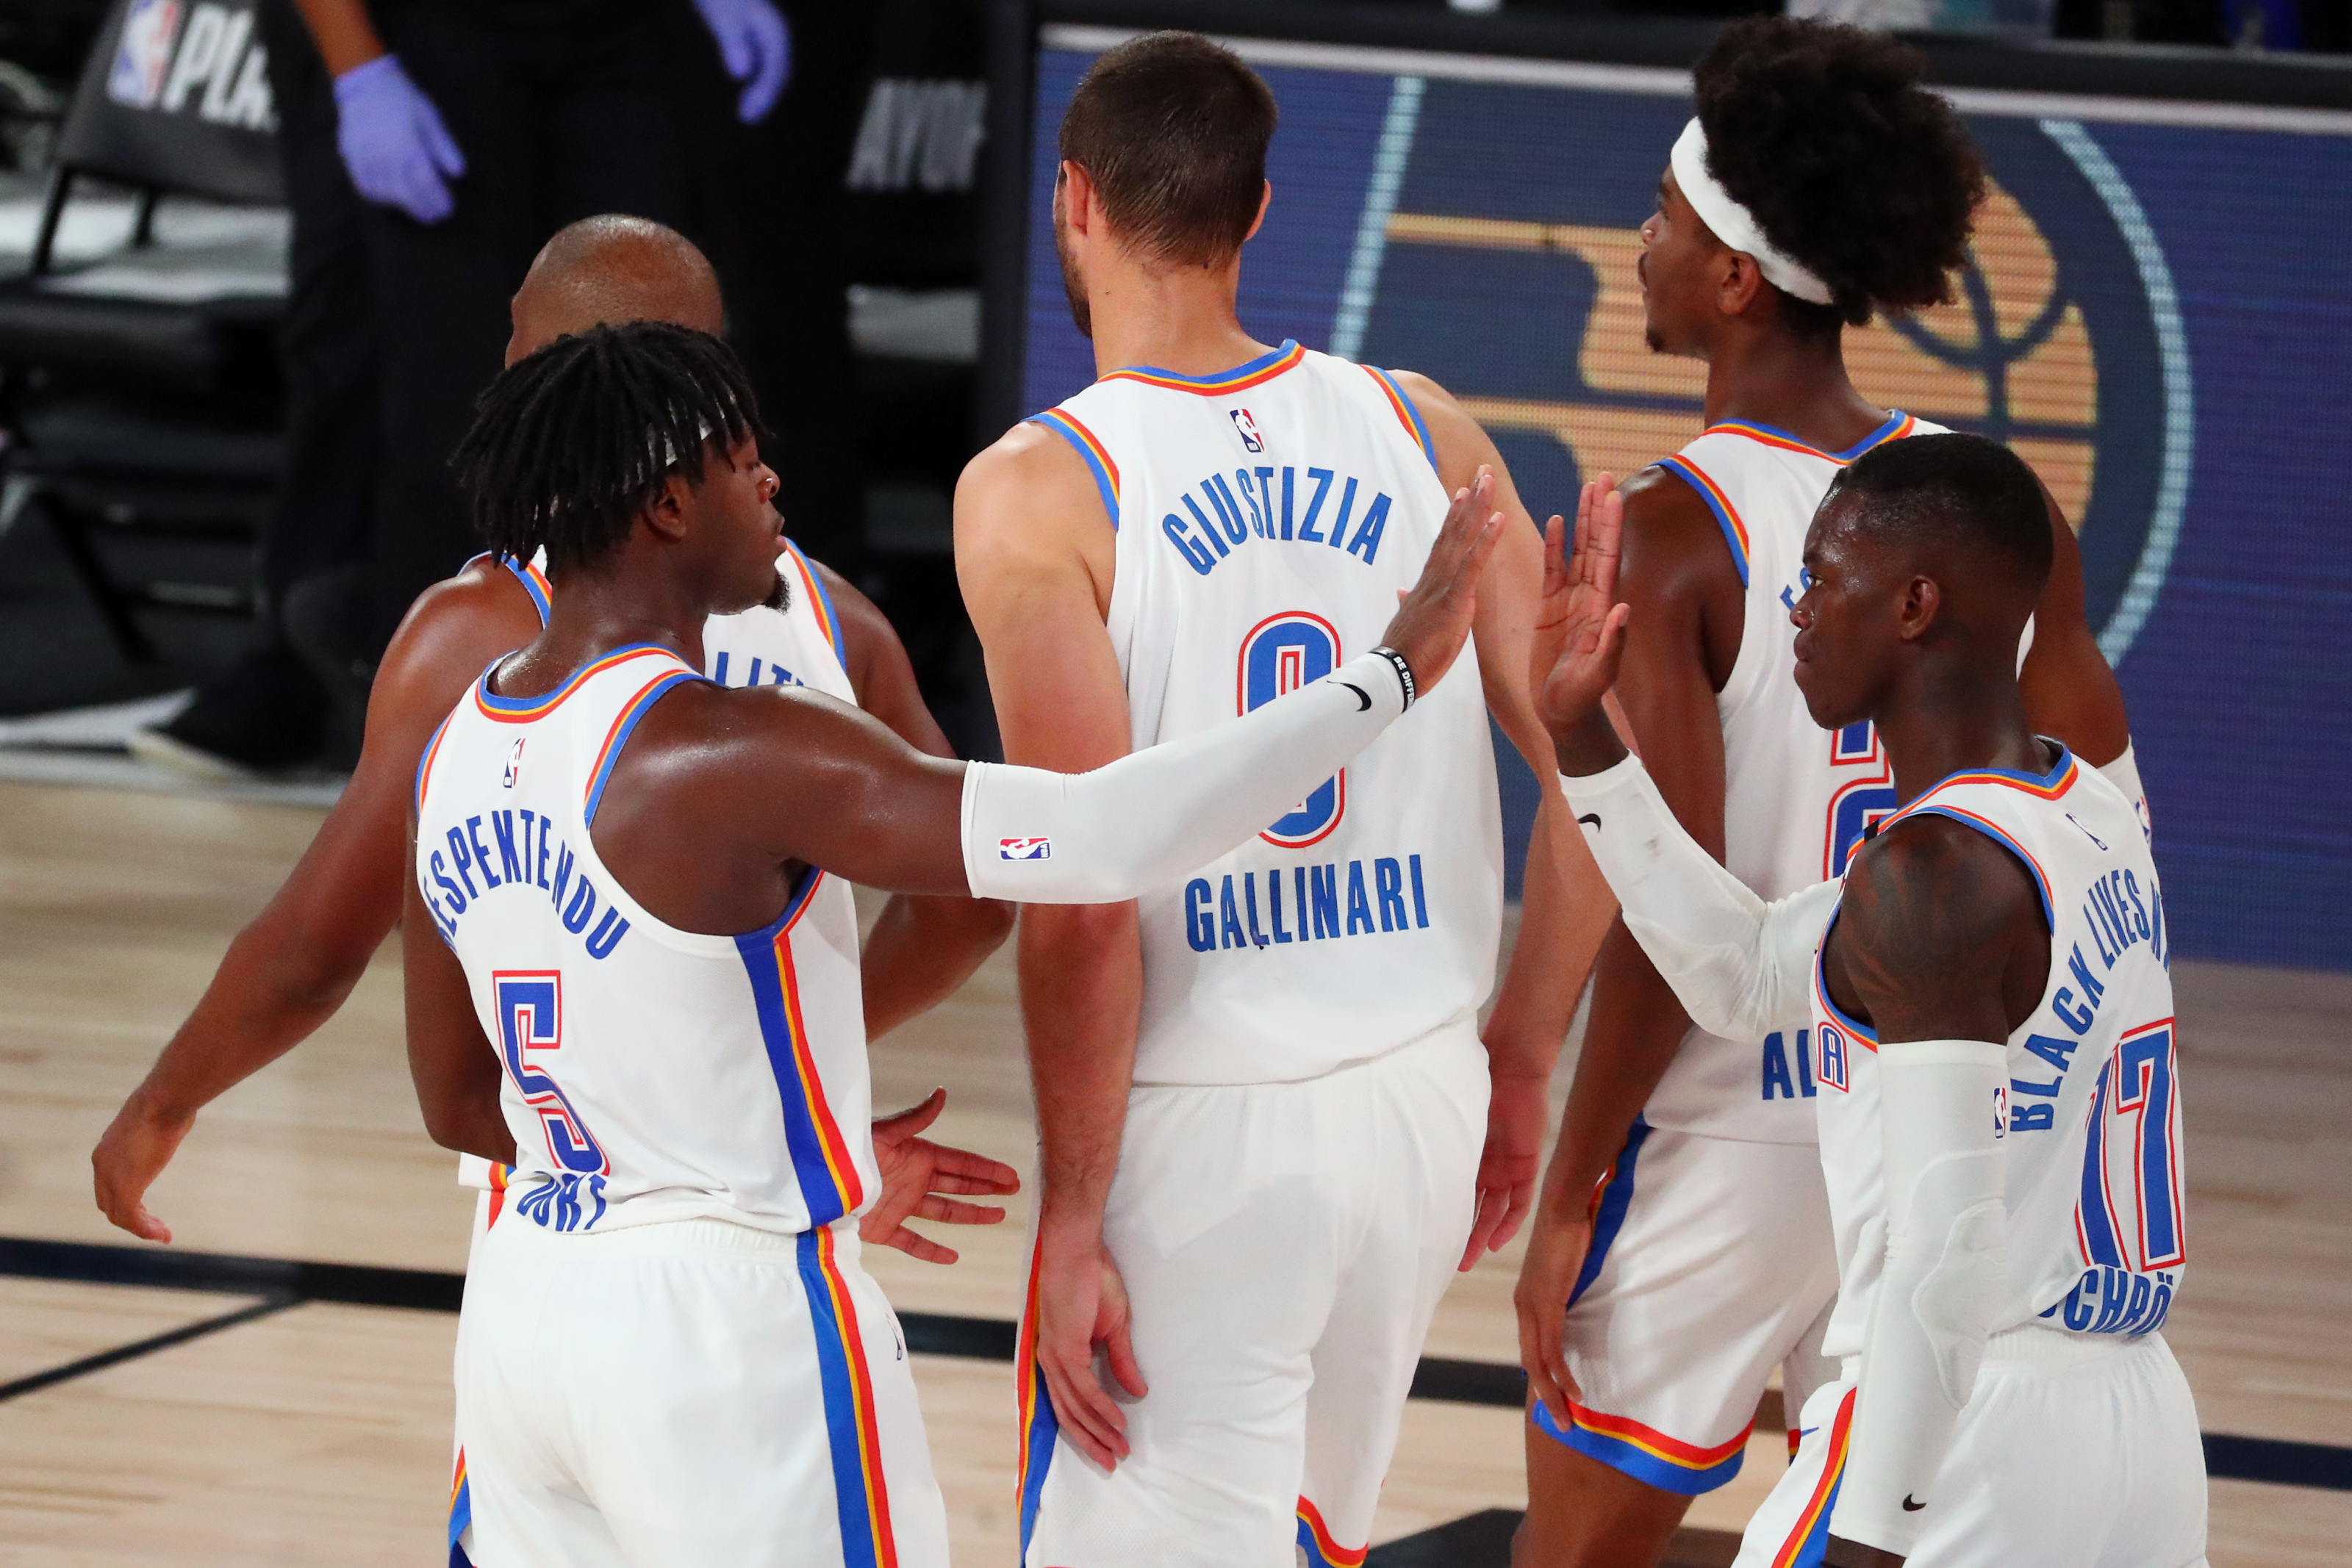 Thunder spurs game 5 betting line double or nothing betting rules